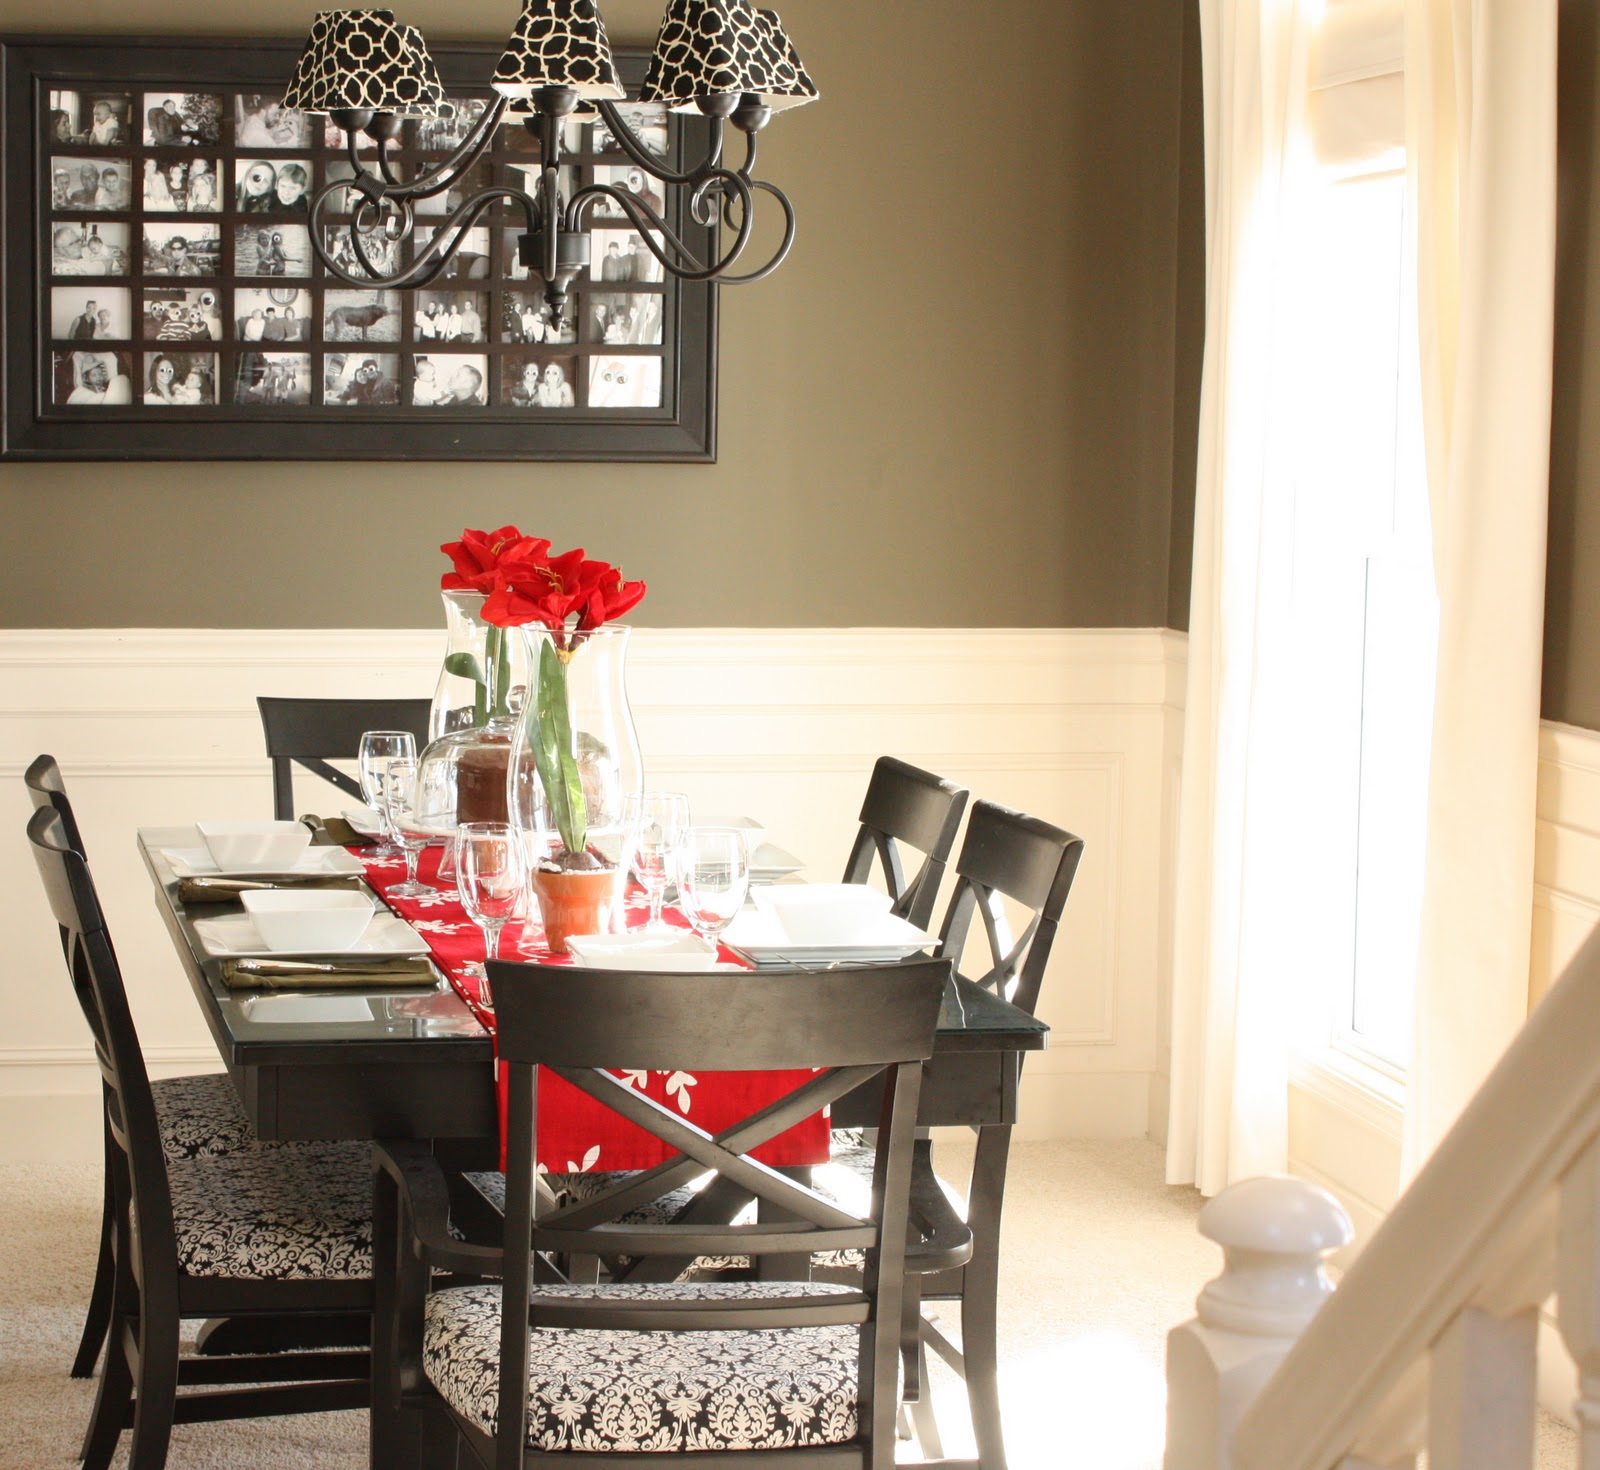 Dining Room Decor On Table With Red Flower And Six Chairs Stylish CHandelier Frames